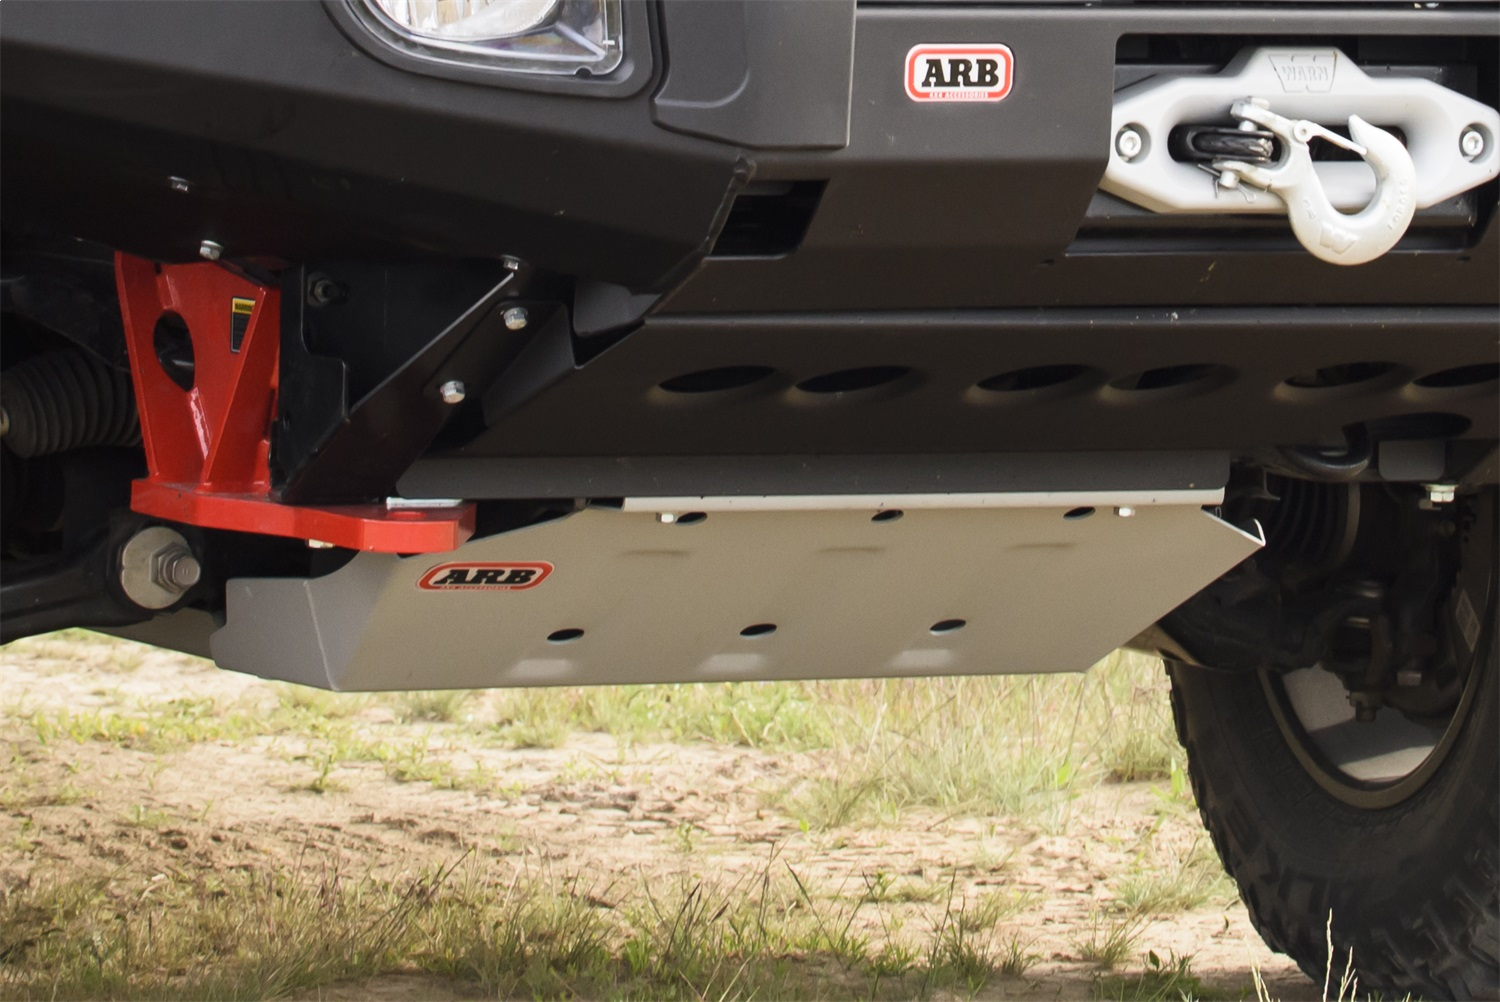 ARB 4x4 Accessories 5448110 Under Vehicle Protection Kit